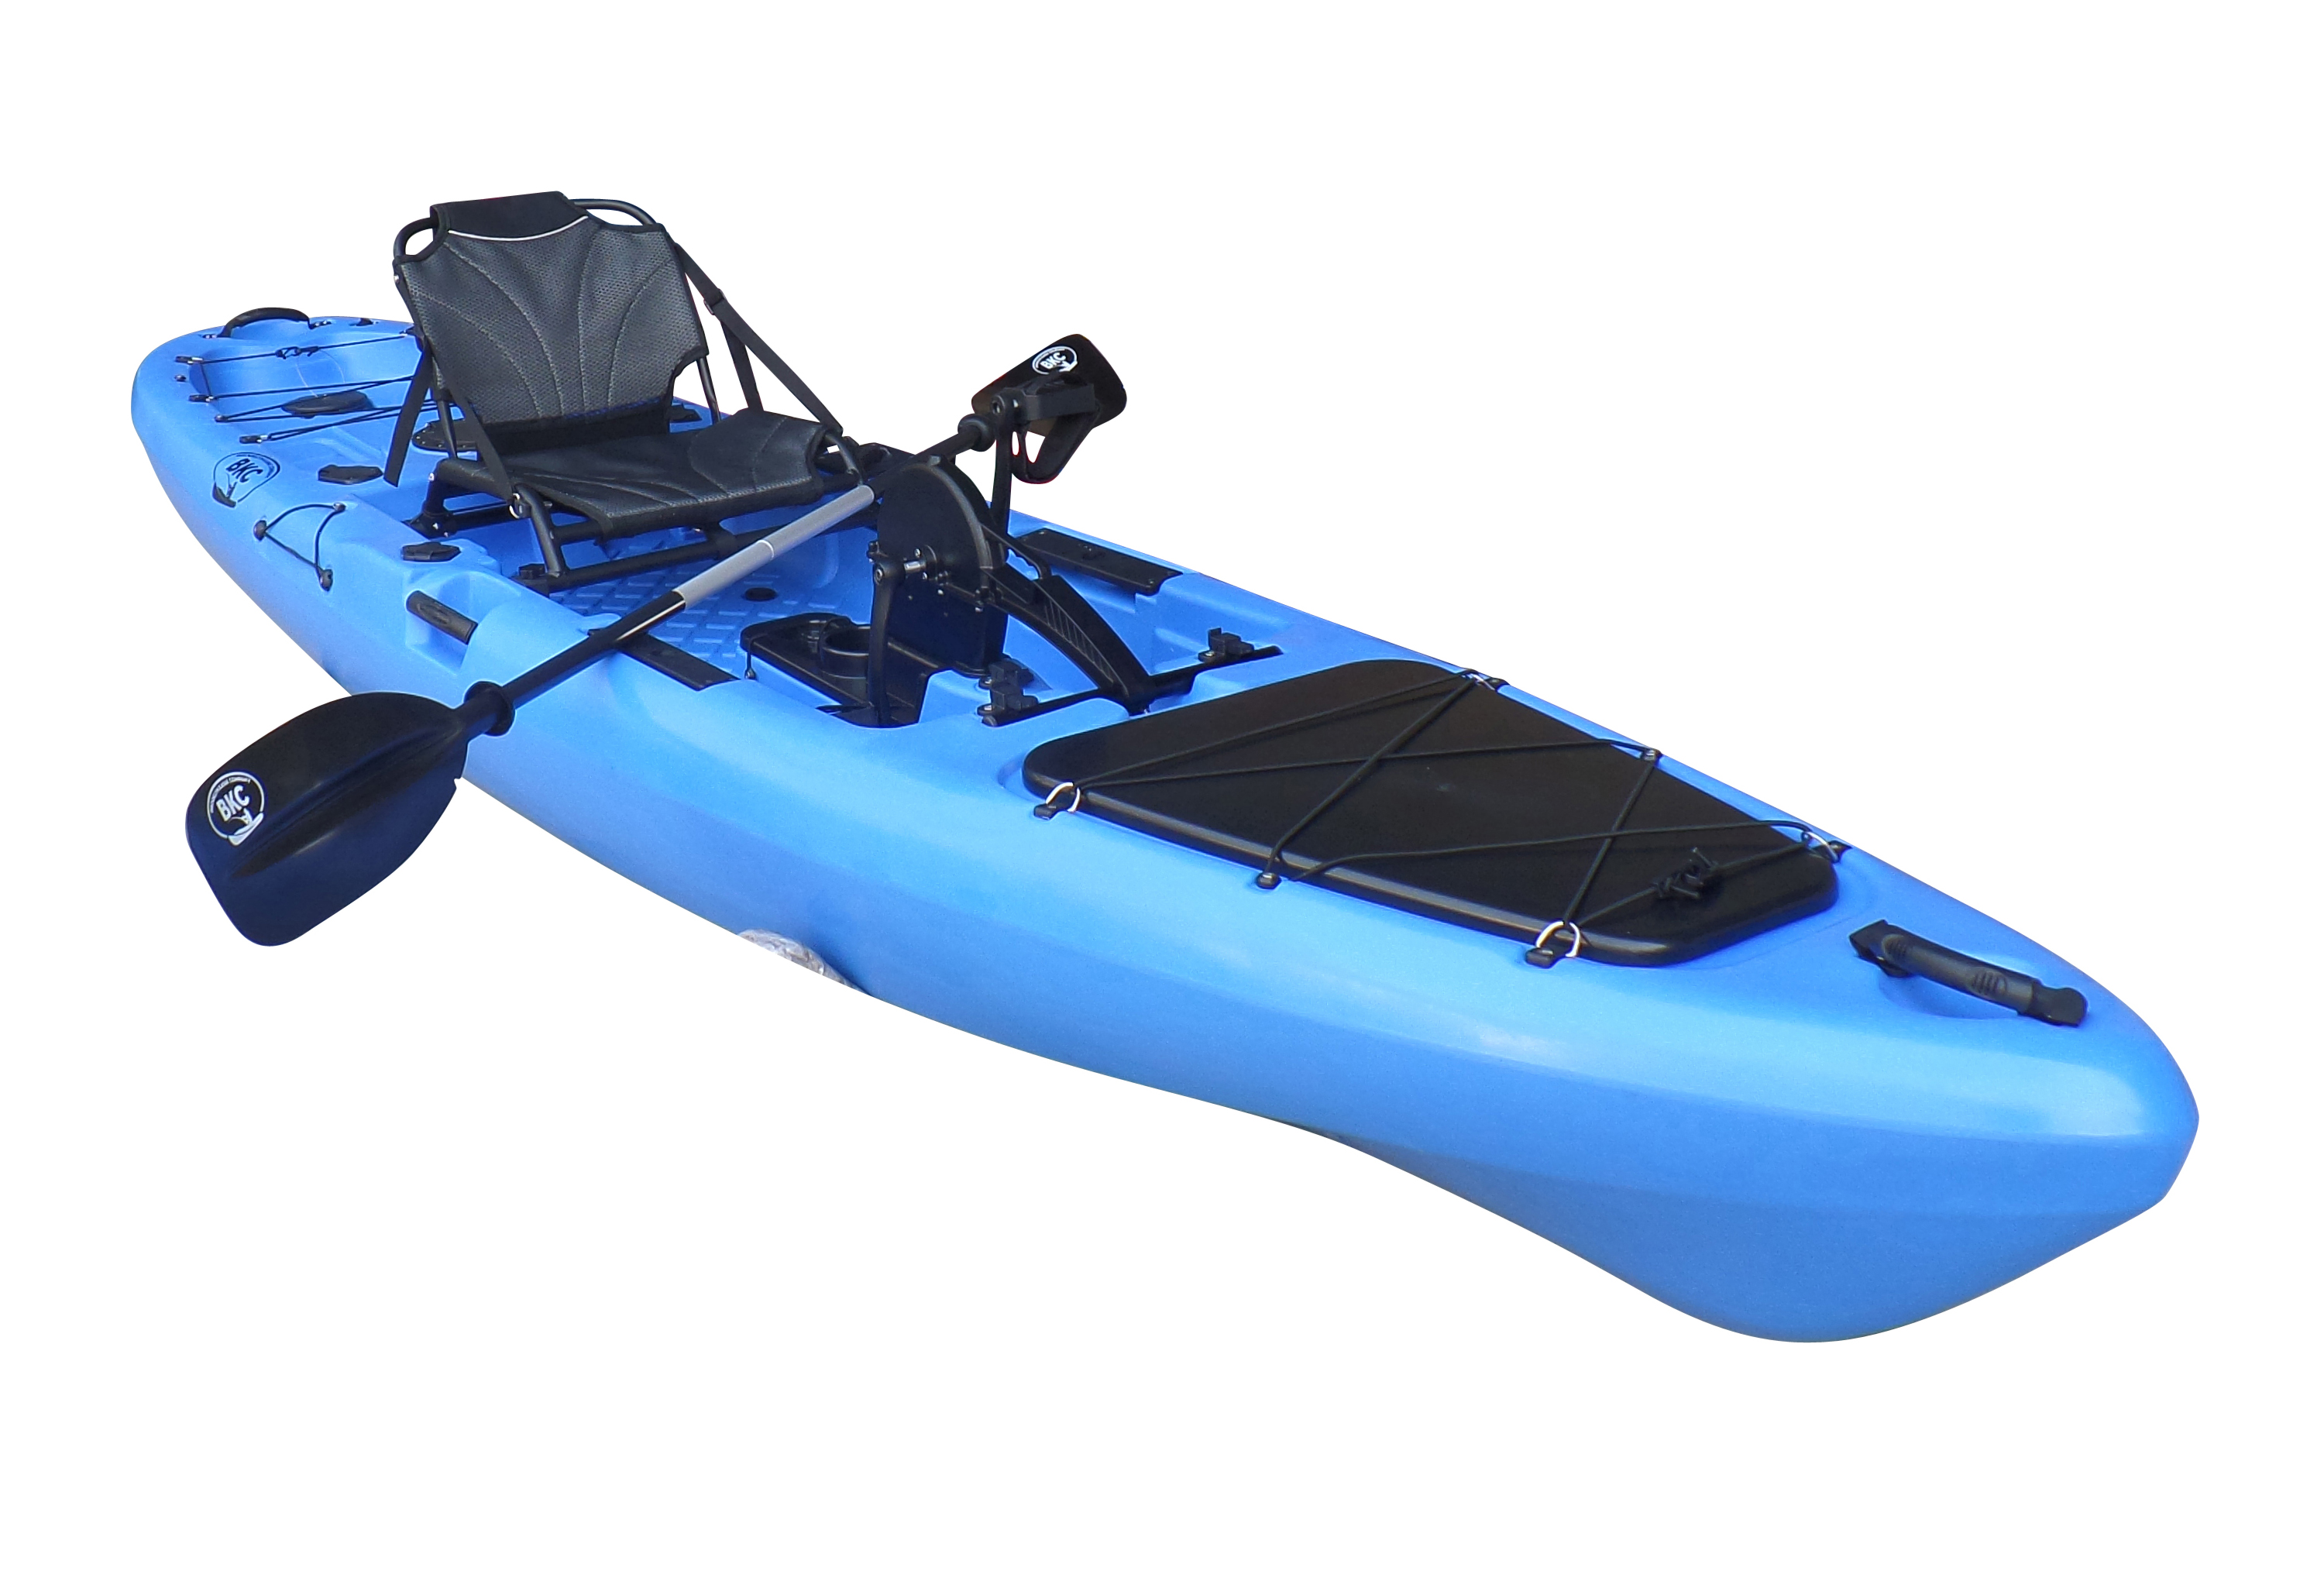 Bkc Uh Pk13 Pedal Drive Solo Traveler 13 Foot Kayak Pedal Propeller Drive Single Person Sit On Top Fishing Kayak With Pedal Drive Rudder System Paddle And Seat Included Walmart Com Walmart Com